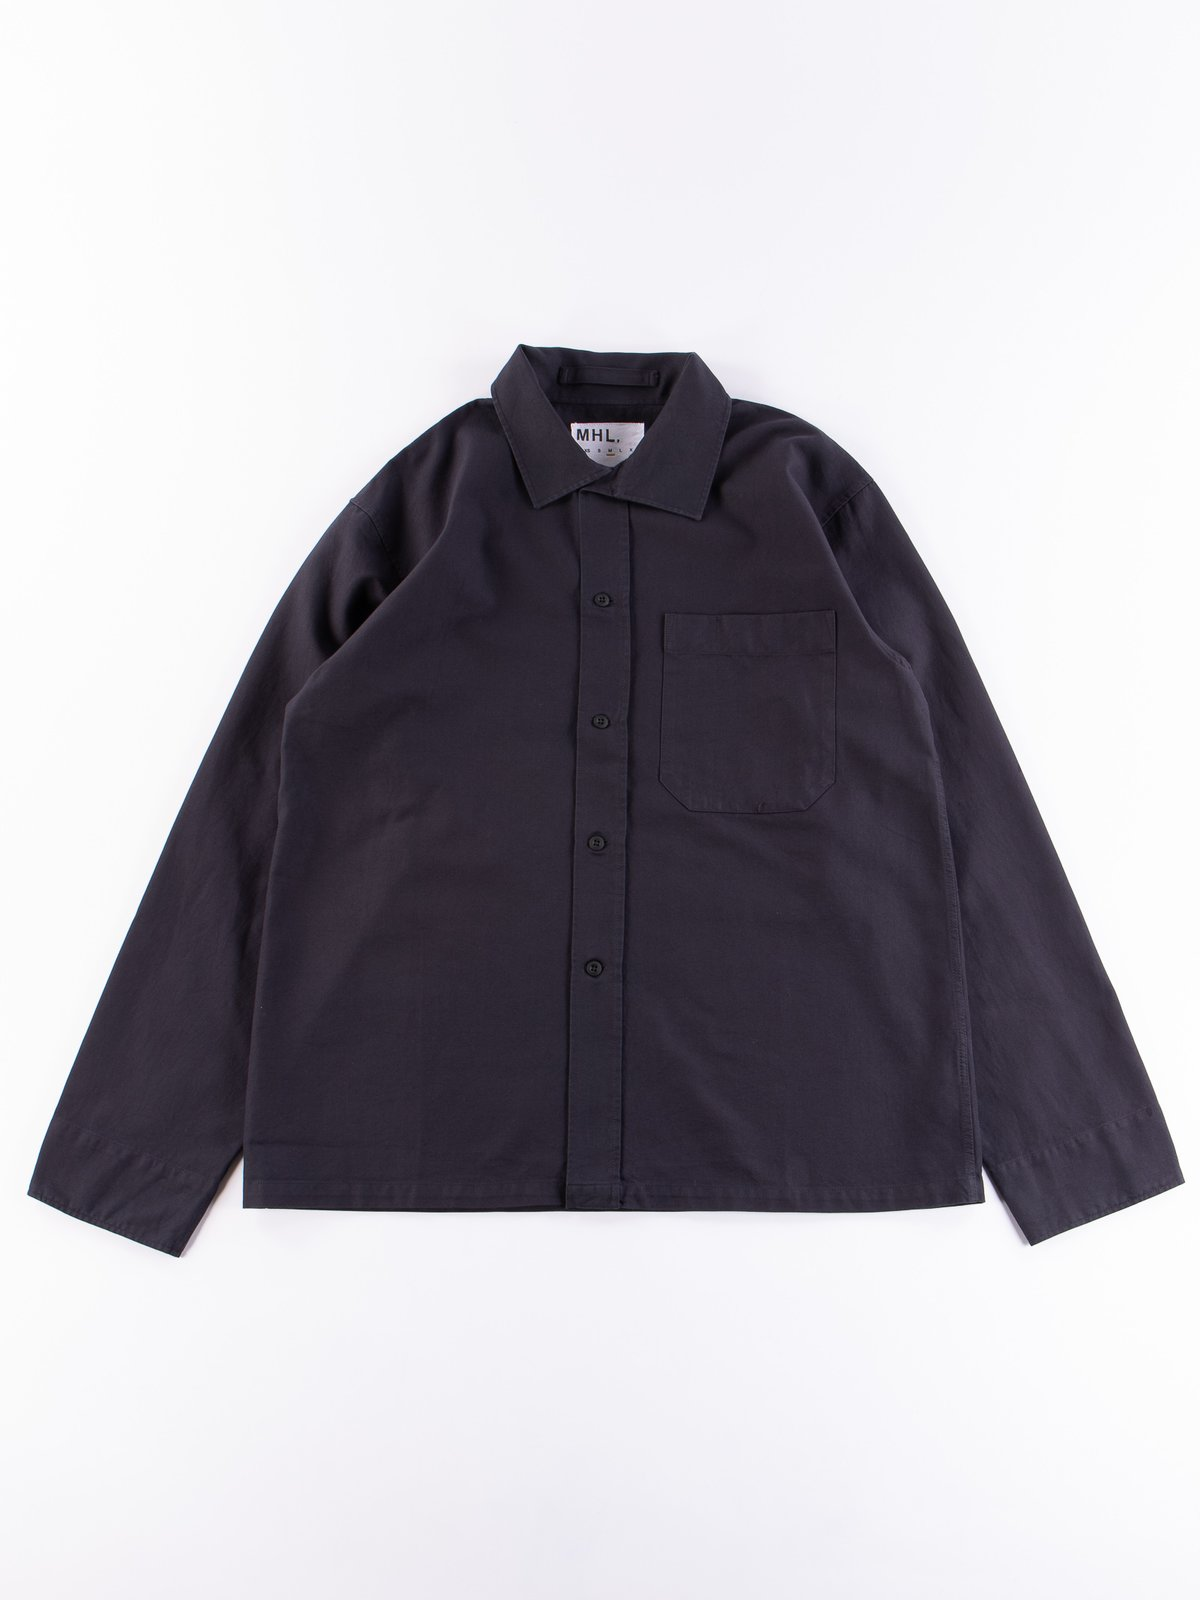 MHL Charcoal Asymmetric Collar Shirt - Image 1